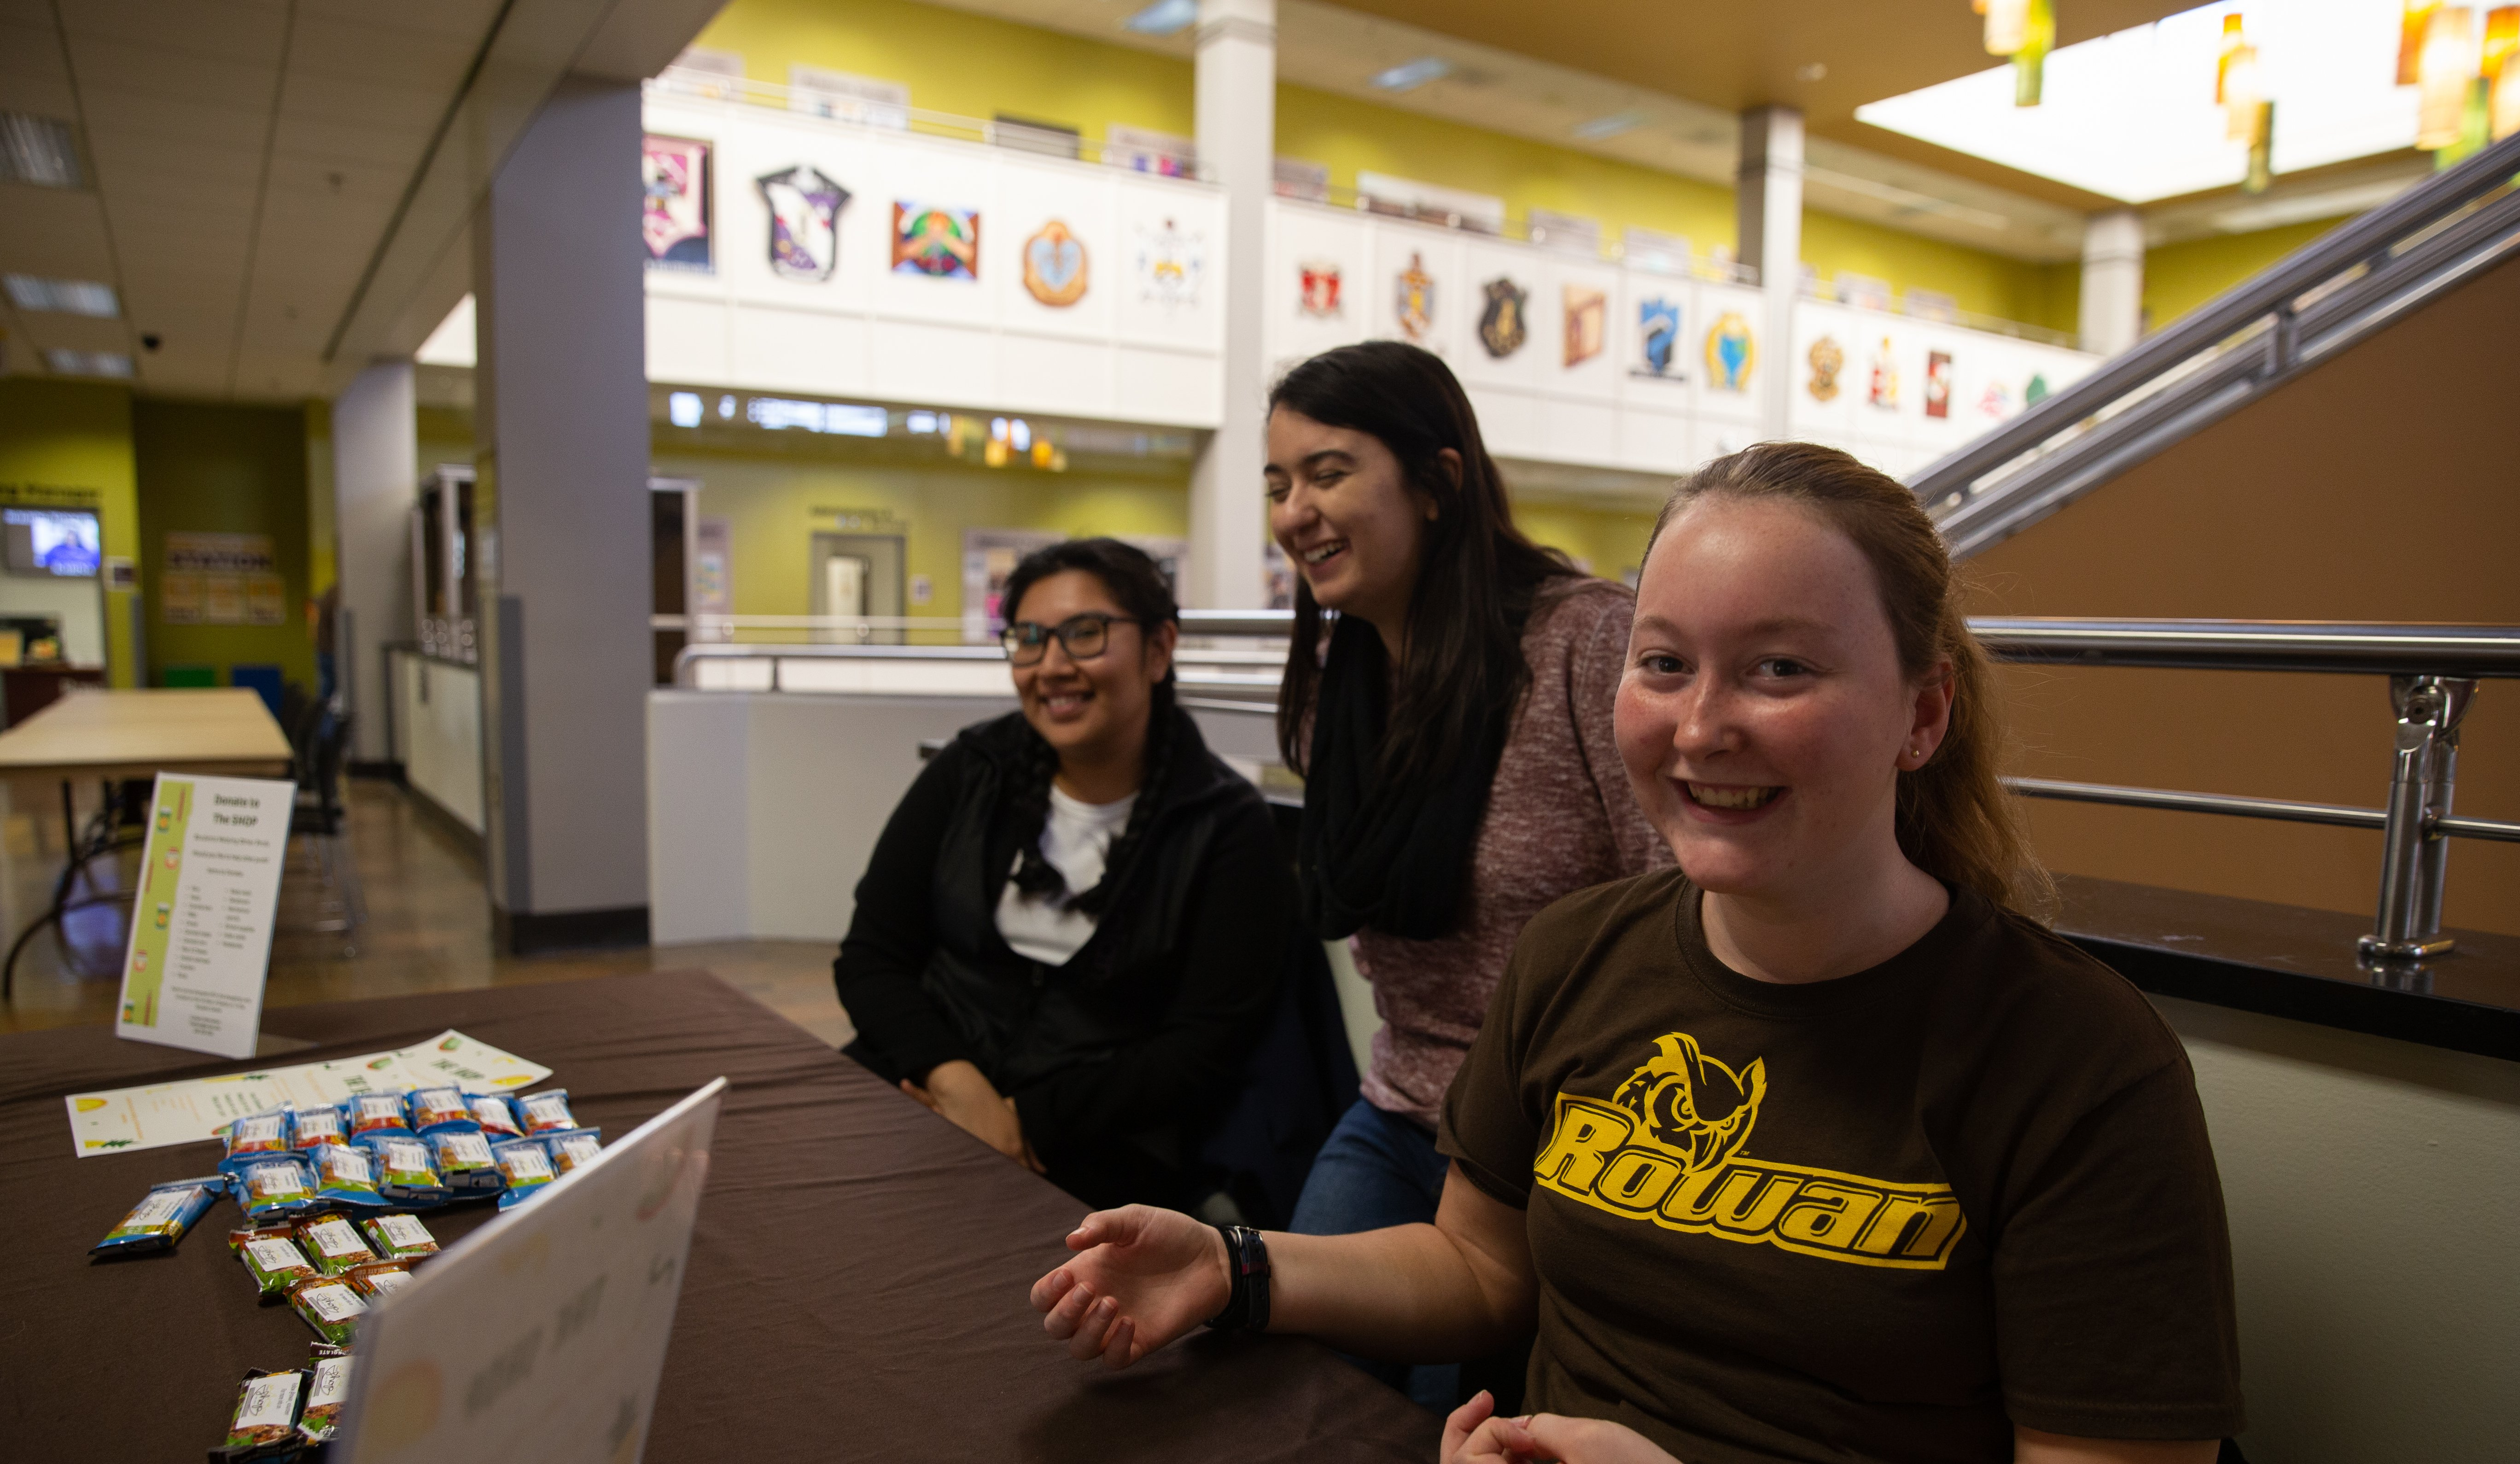 Rachel Rumbsy (right) hands out granola bars at Rowan University's Student Center for The SHOP.